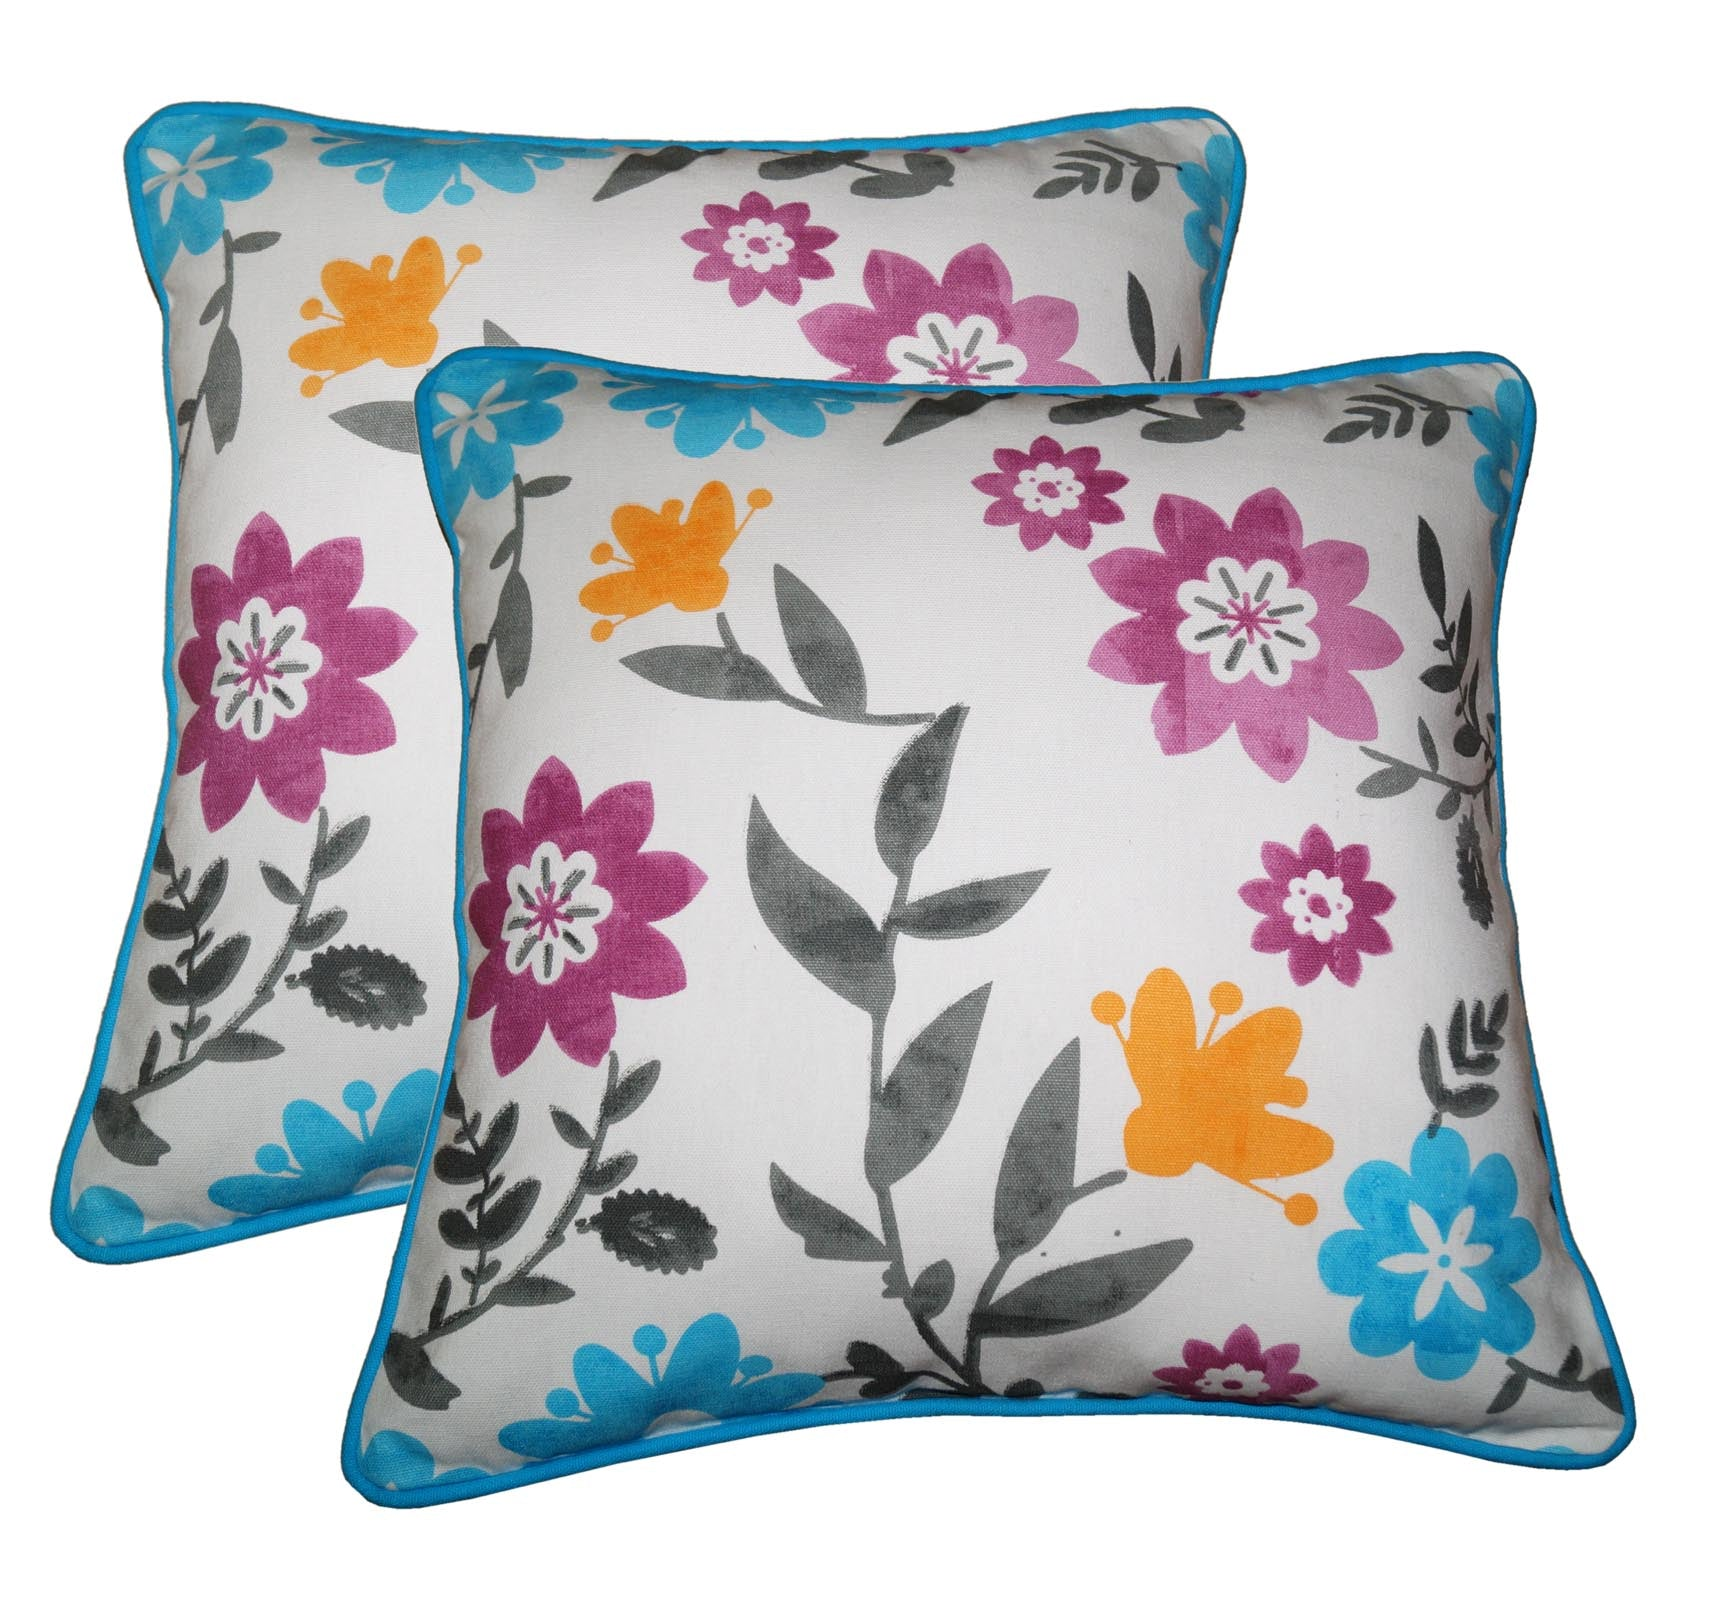 "Lushomes Flower Print Cotton Cushion Covers (Size 12"" x 12"") Pack of 2"